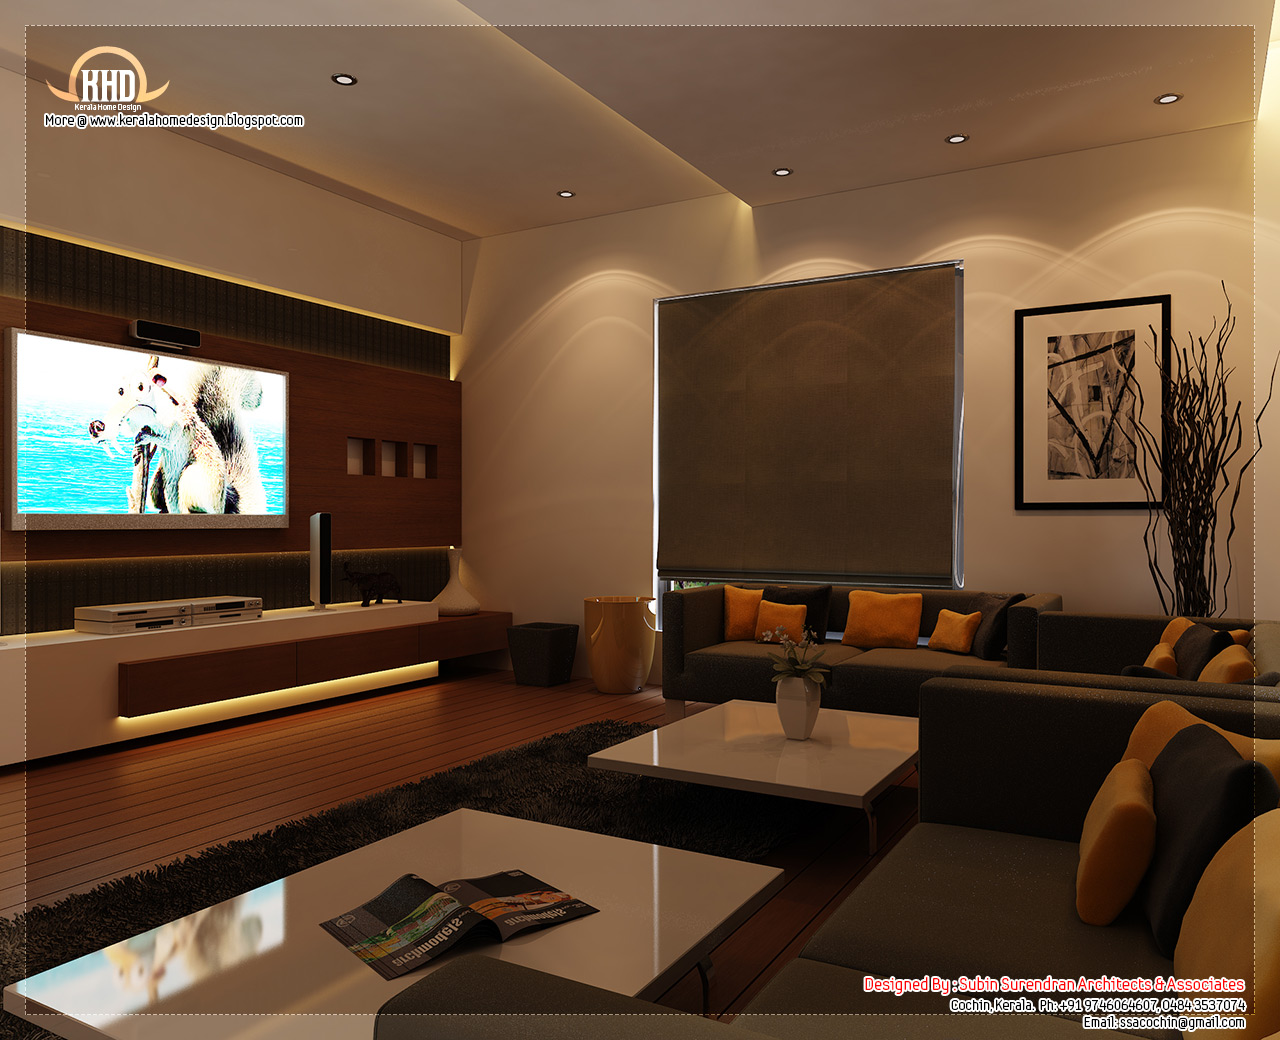 Beautiful home interior designs kerala home for Living room interior design ideas india